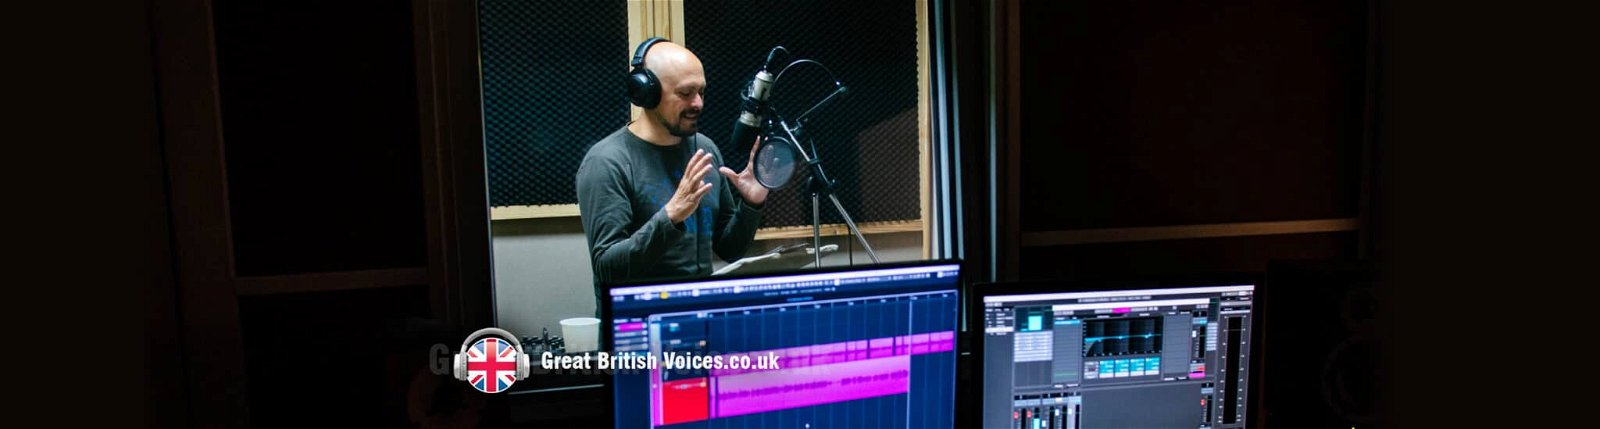 5 reasons to hire a professional voice over with studio at Great British Voices